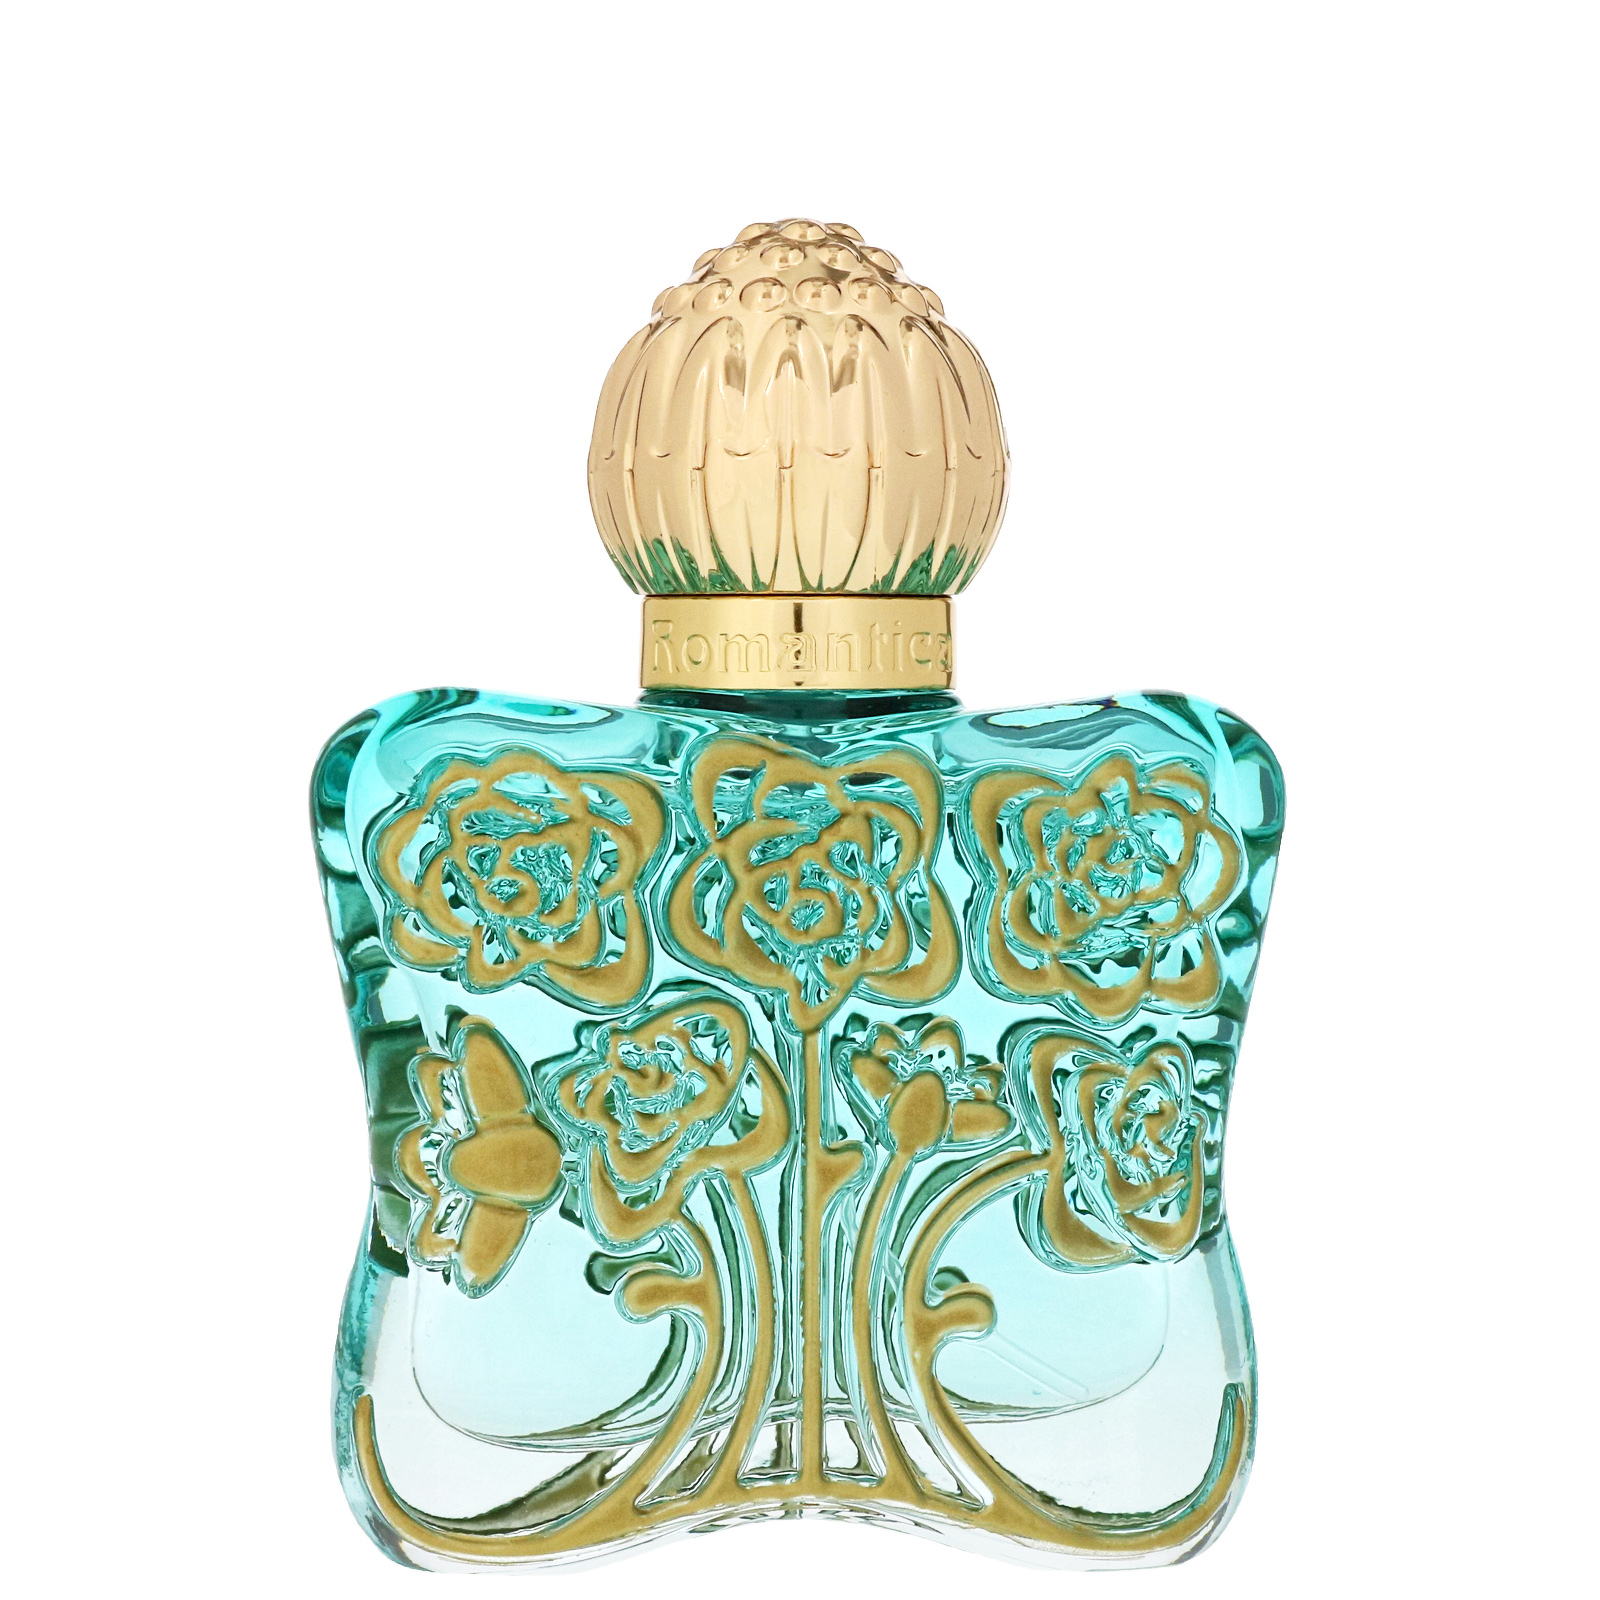 Anna Sui Romantica Exotica Eau de Toilette Spray 30ml